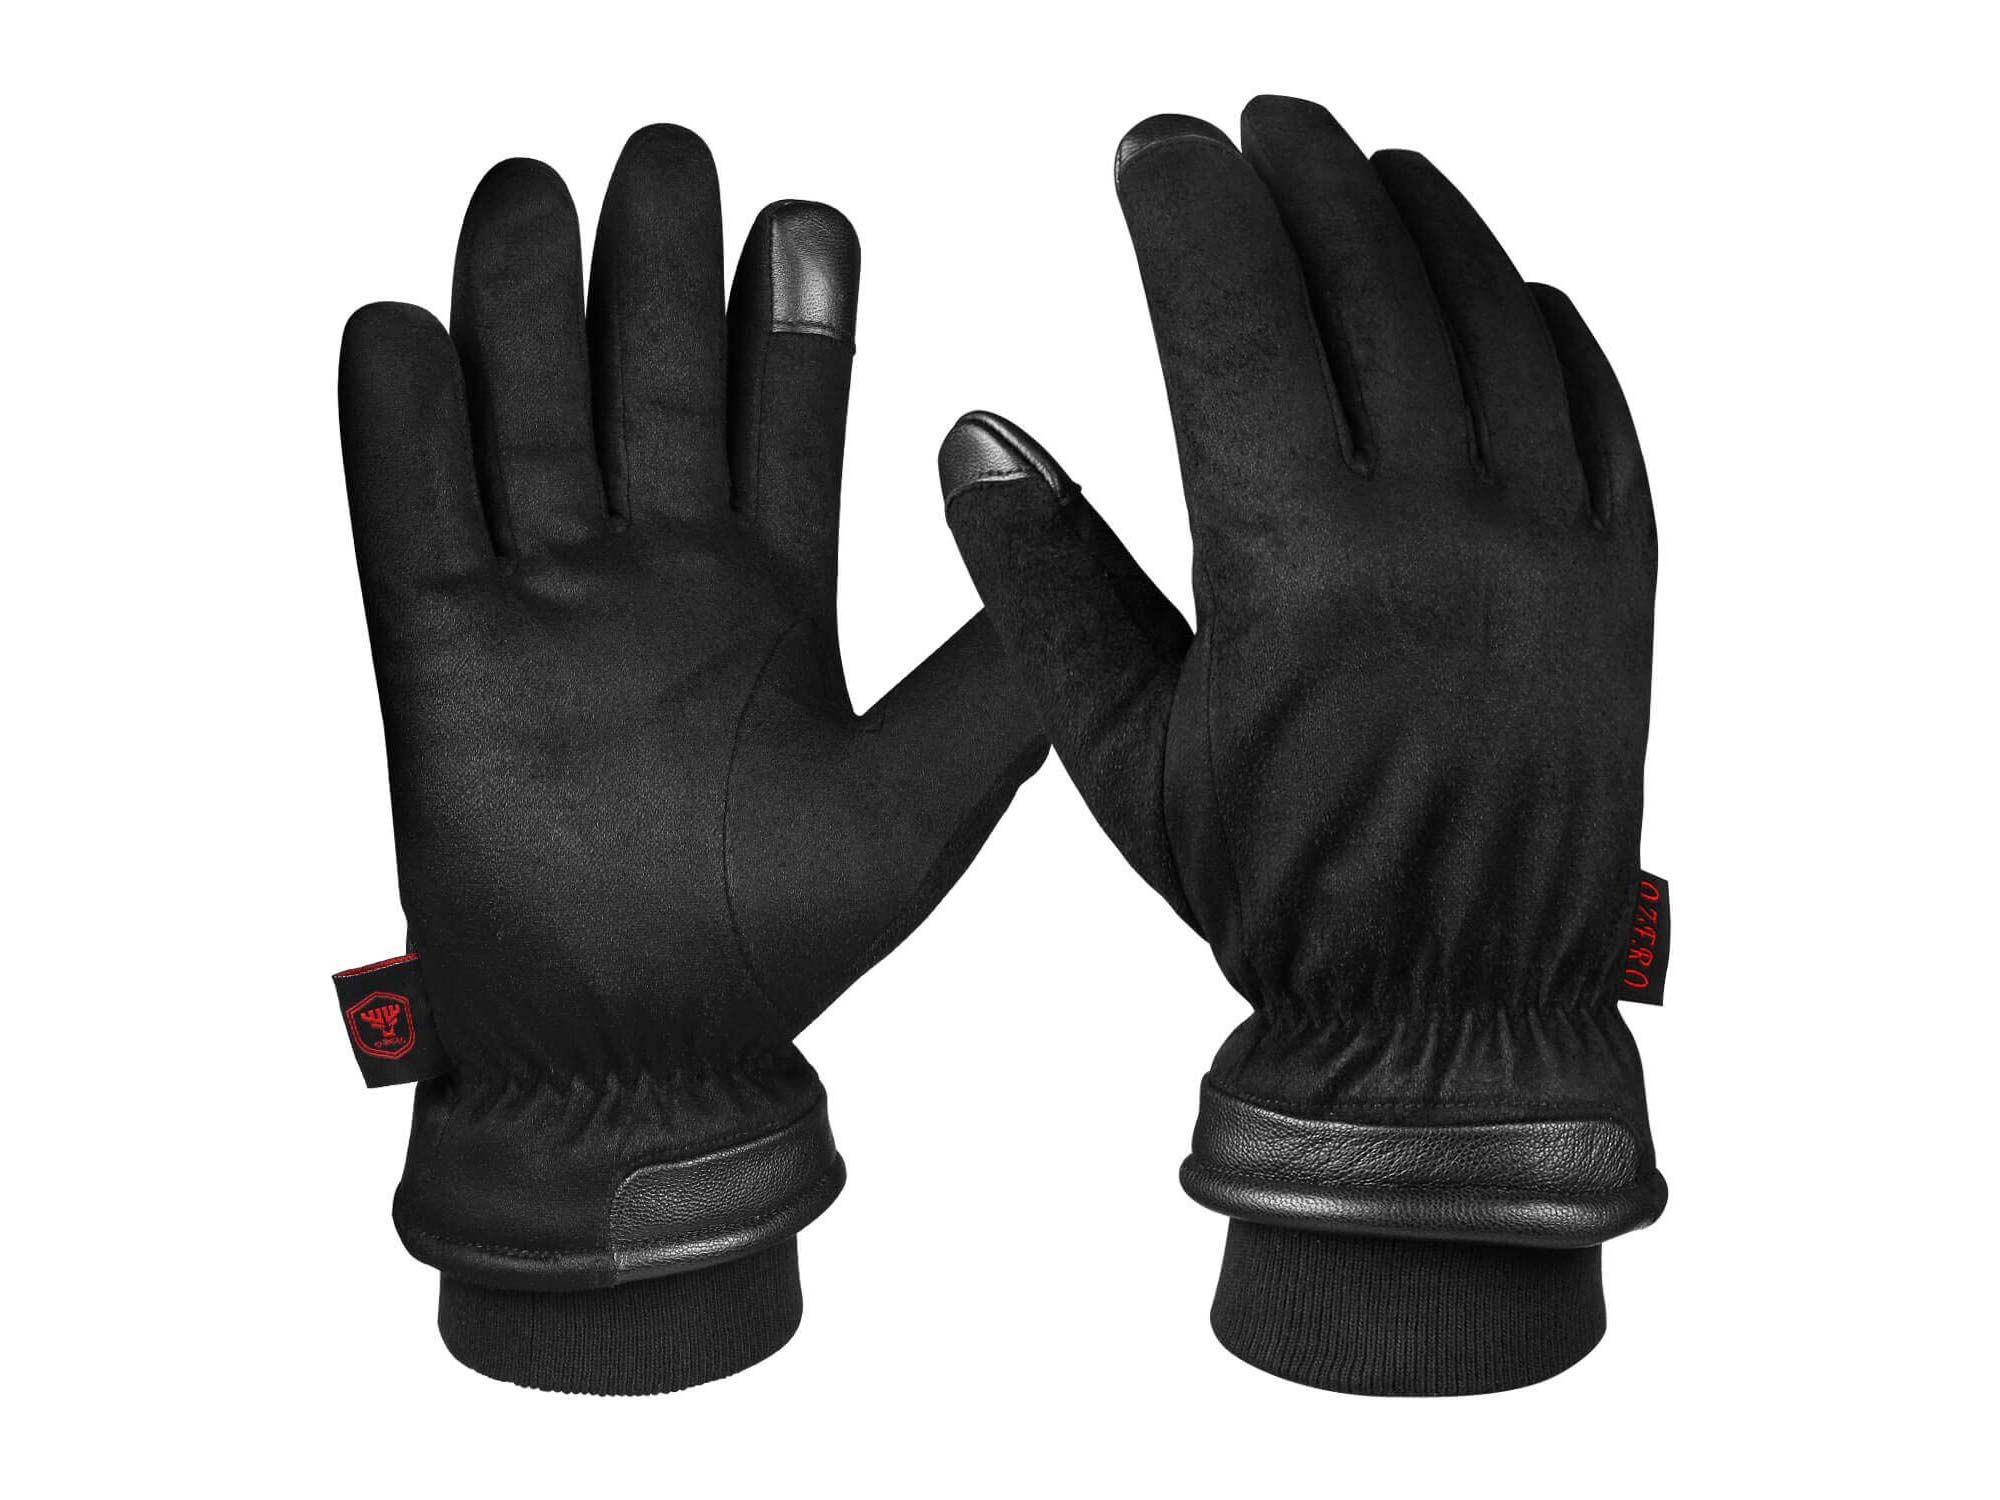 BAR Polaris Leather Touring Gloves for Unisex with Reinforced Heel and Hard Knuckle Protectors